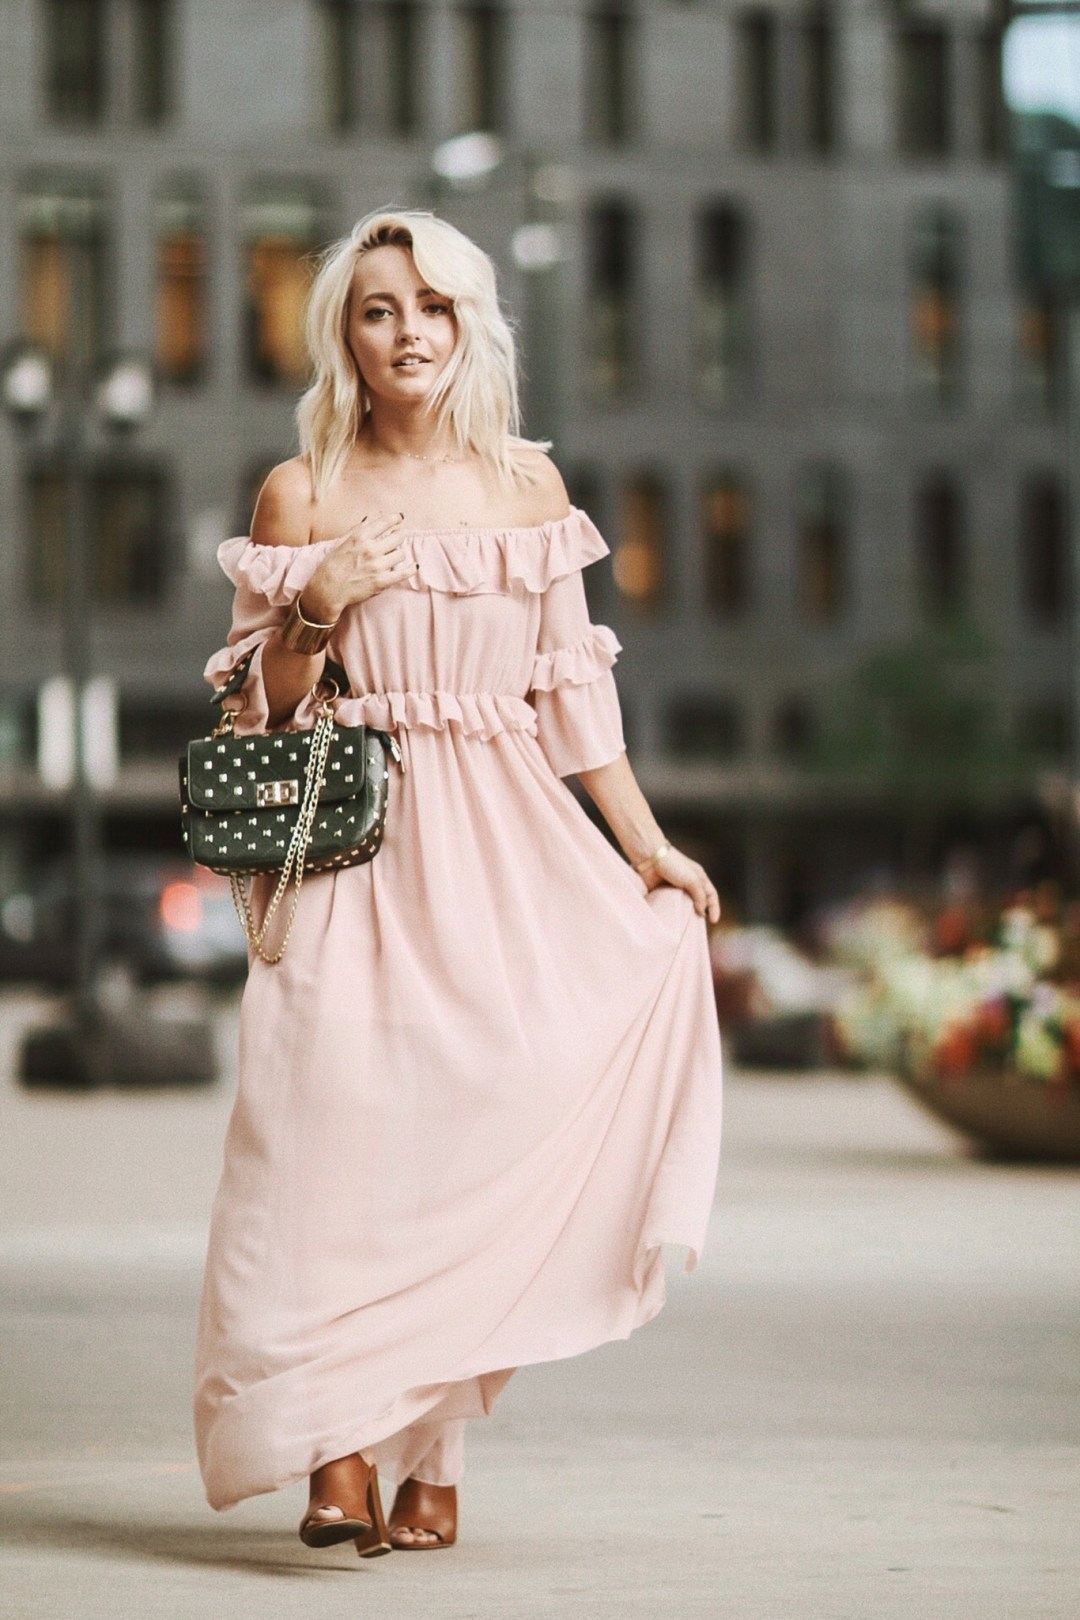 Alena Gidenko shares tips on how to style a dress for a Fall Wedding